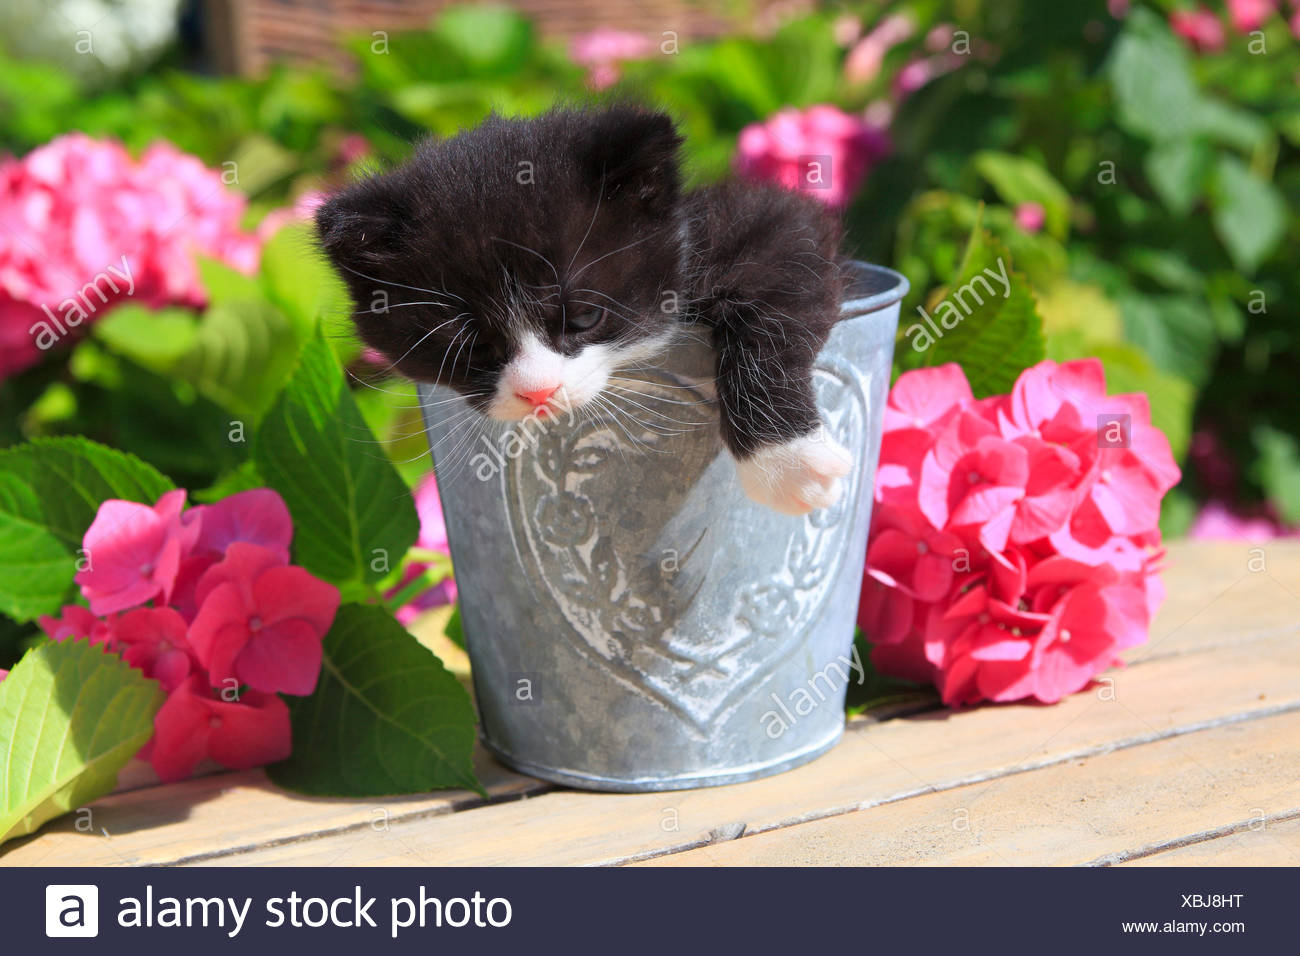 3 weeks, flower, flowers, garden, house, home, Animal, domestic animal, pet, young, cat, jug, kitten, vase, outdoors, outside, o - Stock Image